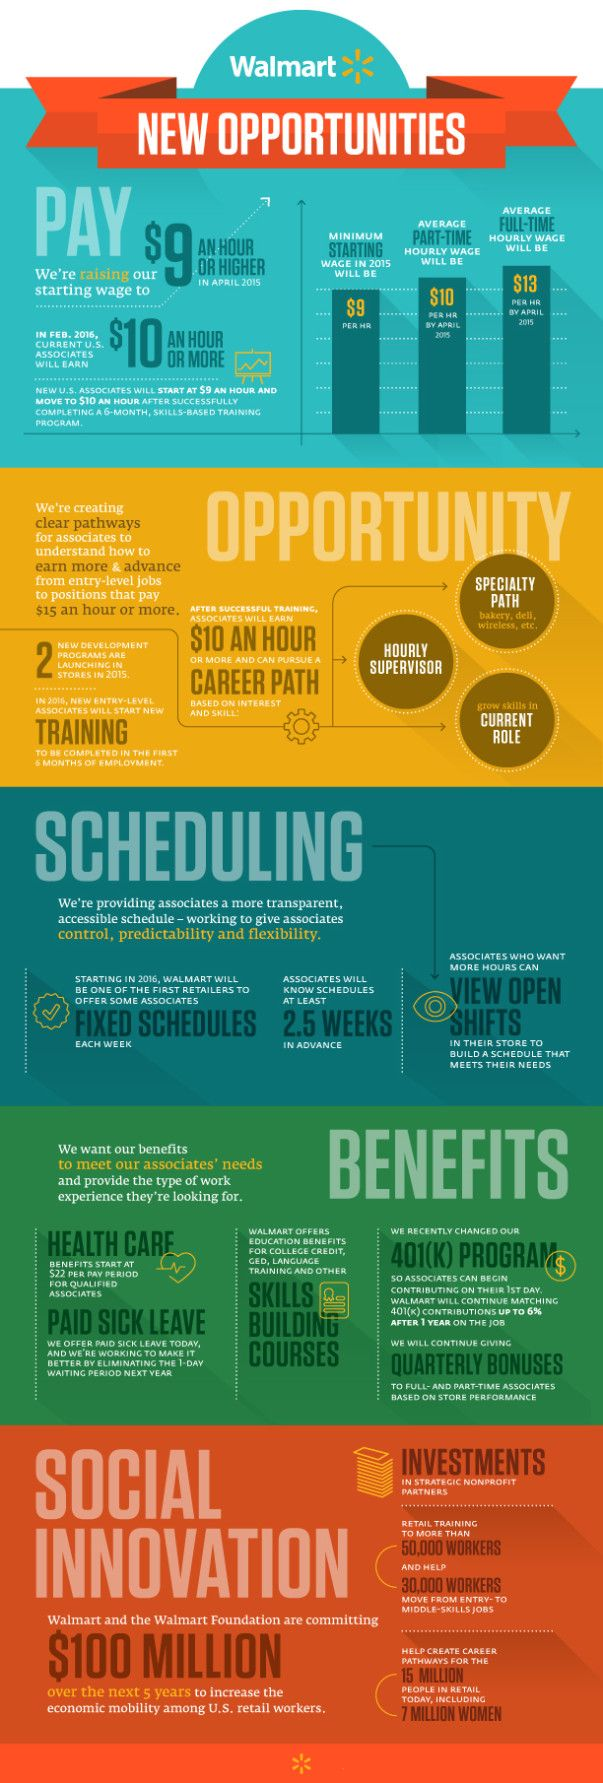 walmart infographic on improved salary schedule.